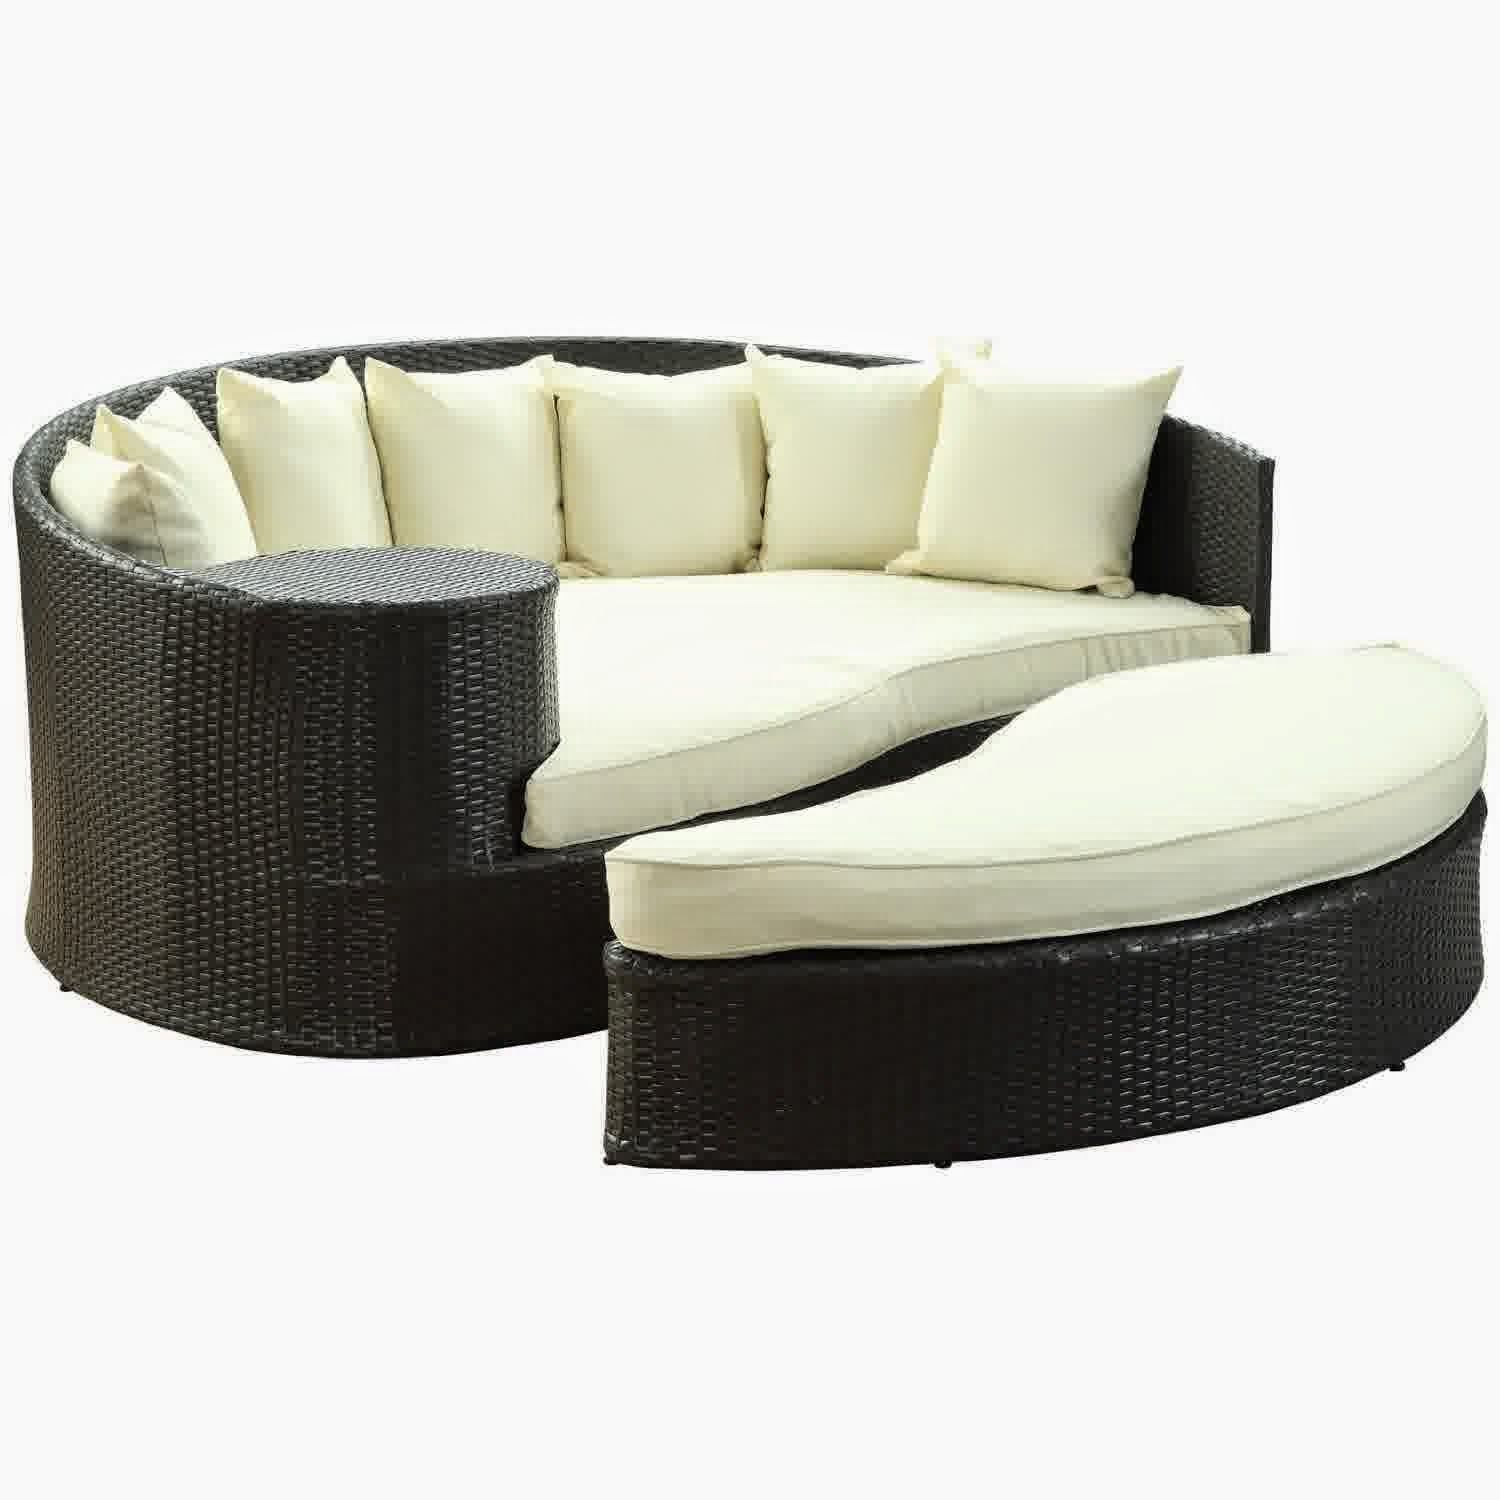 LexMod Taiji Outdoor Wicker Patio Daybed with Ottoman in Espresso